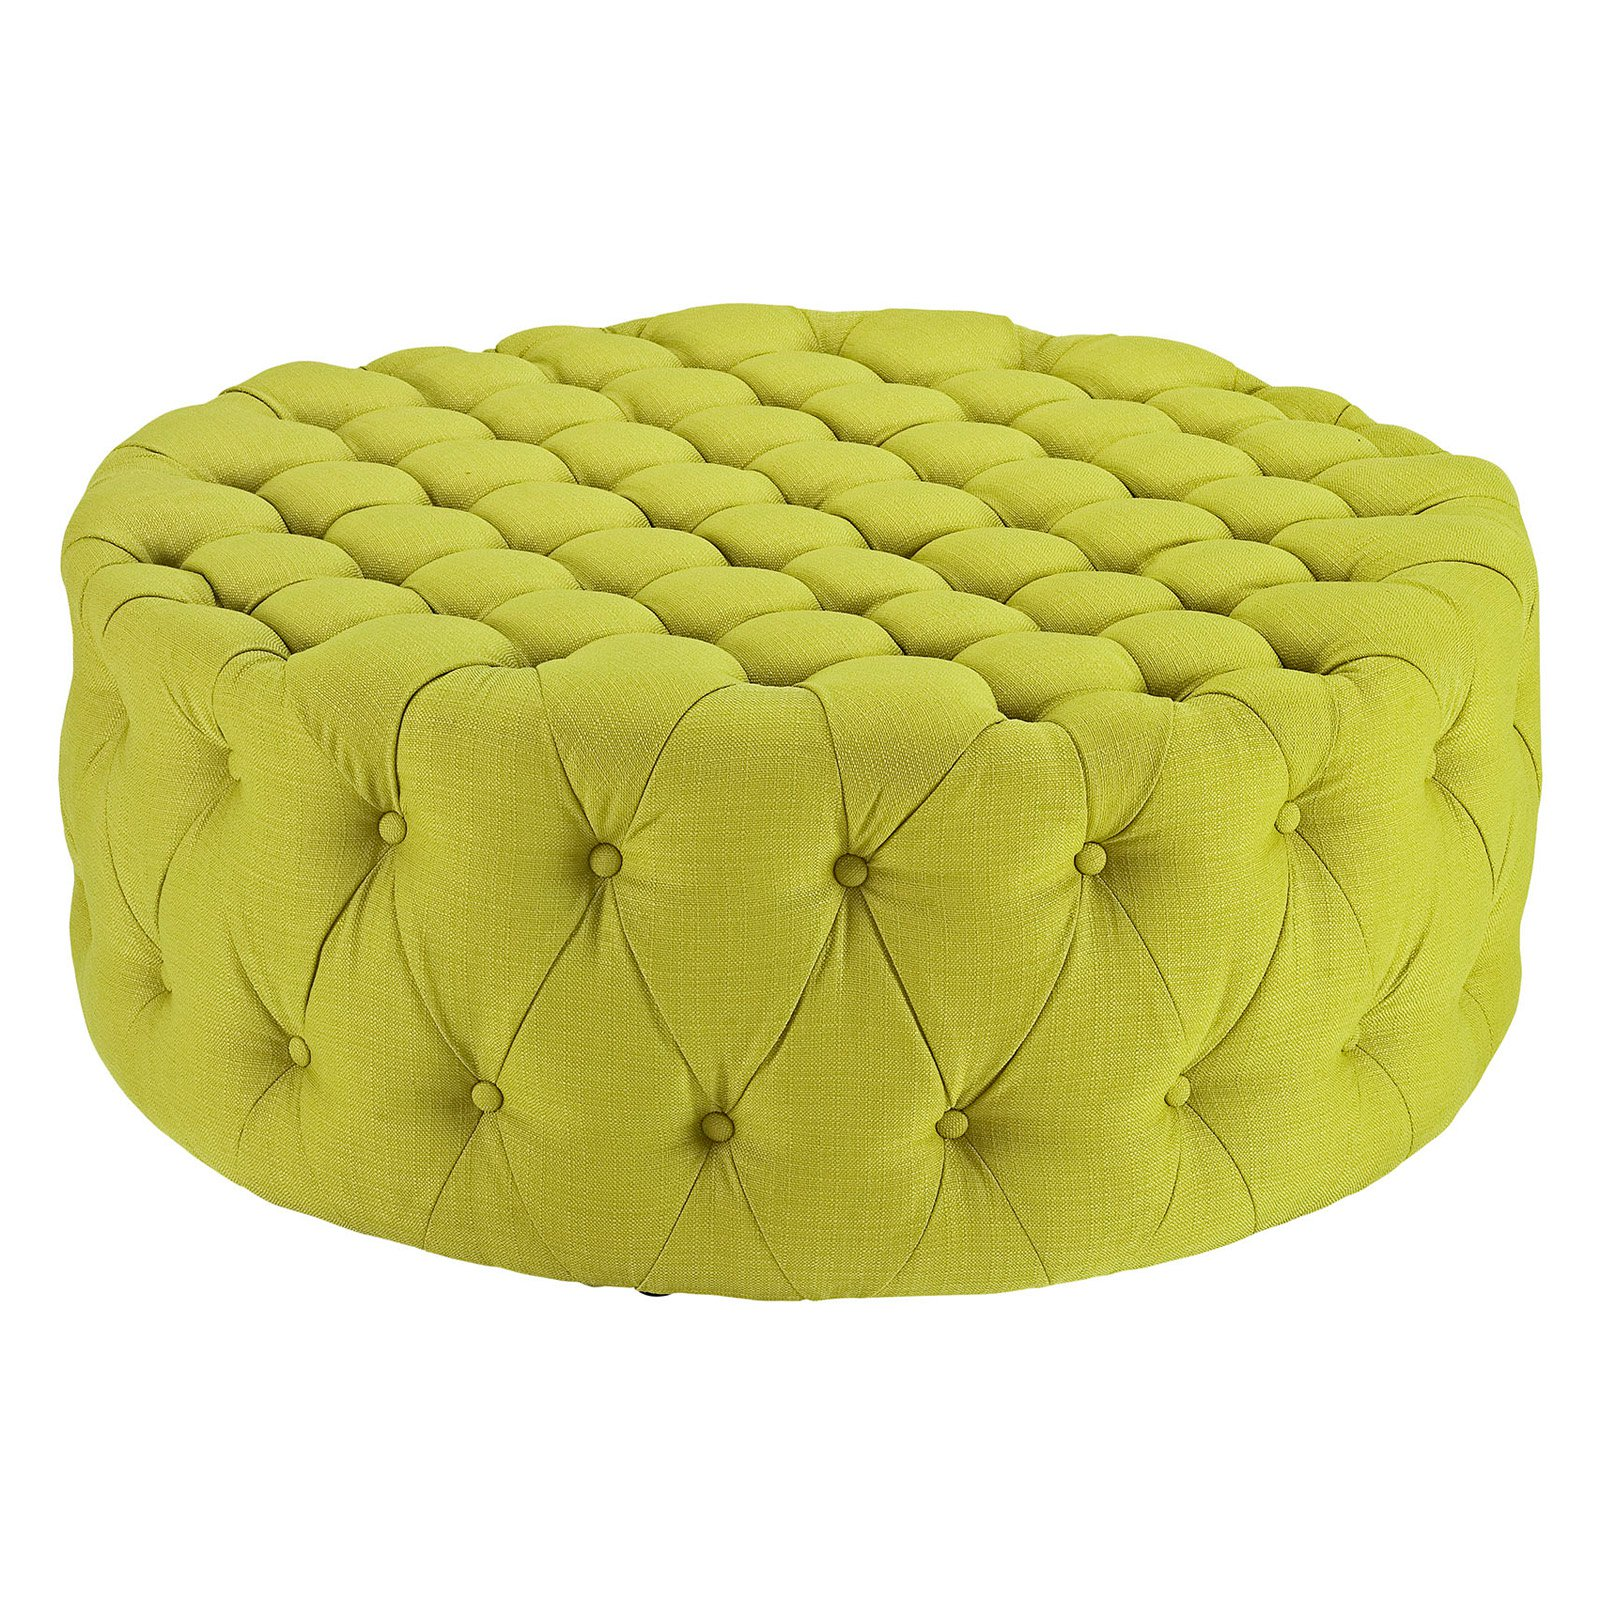 Phenomenal Modway Amour Upholstered Fabric Ottoman Wheatgrass Onthecornerstone Fun Painted Chair Ideas Images Onthecornerstoneorg